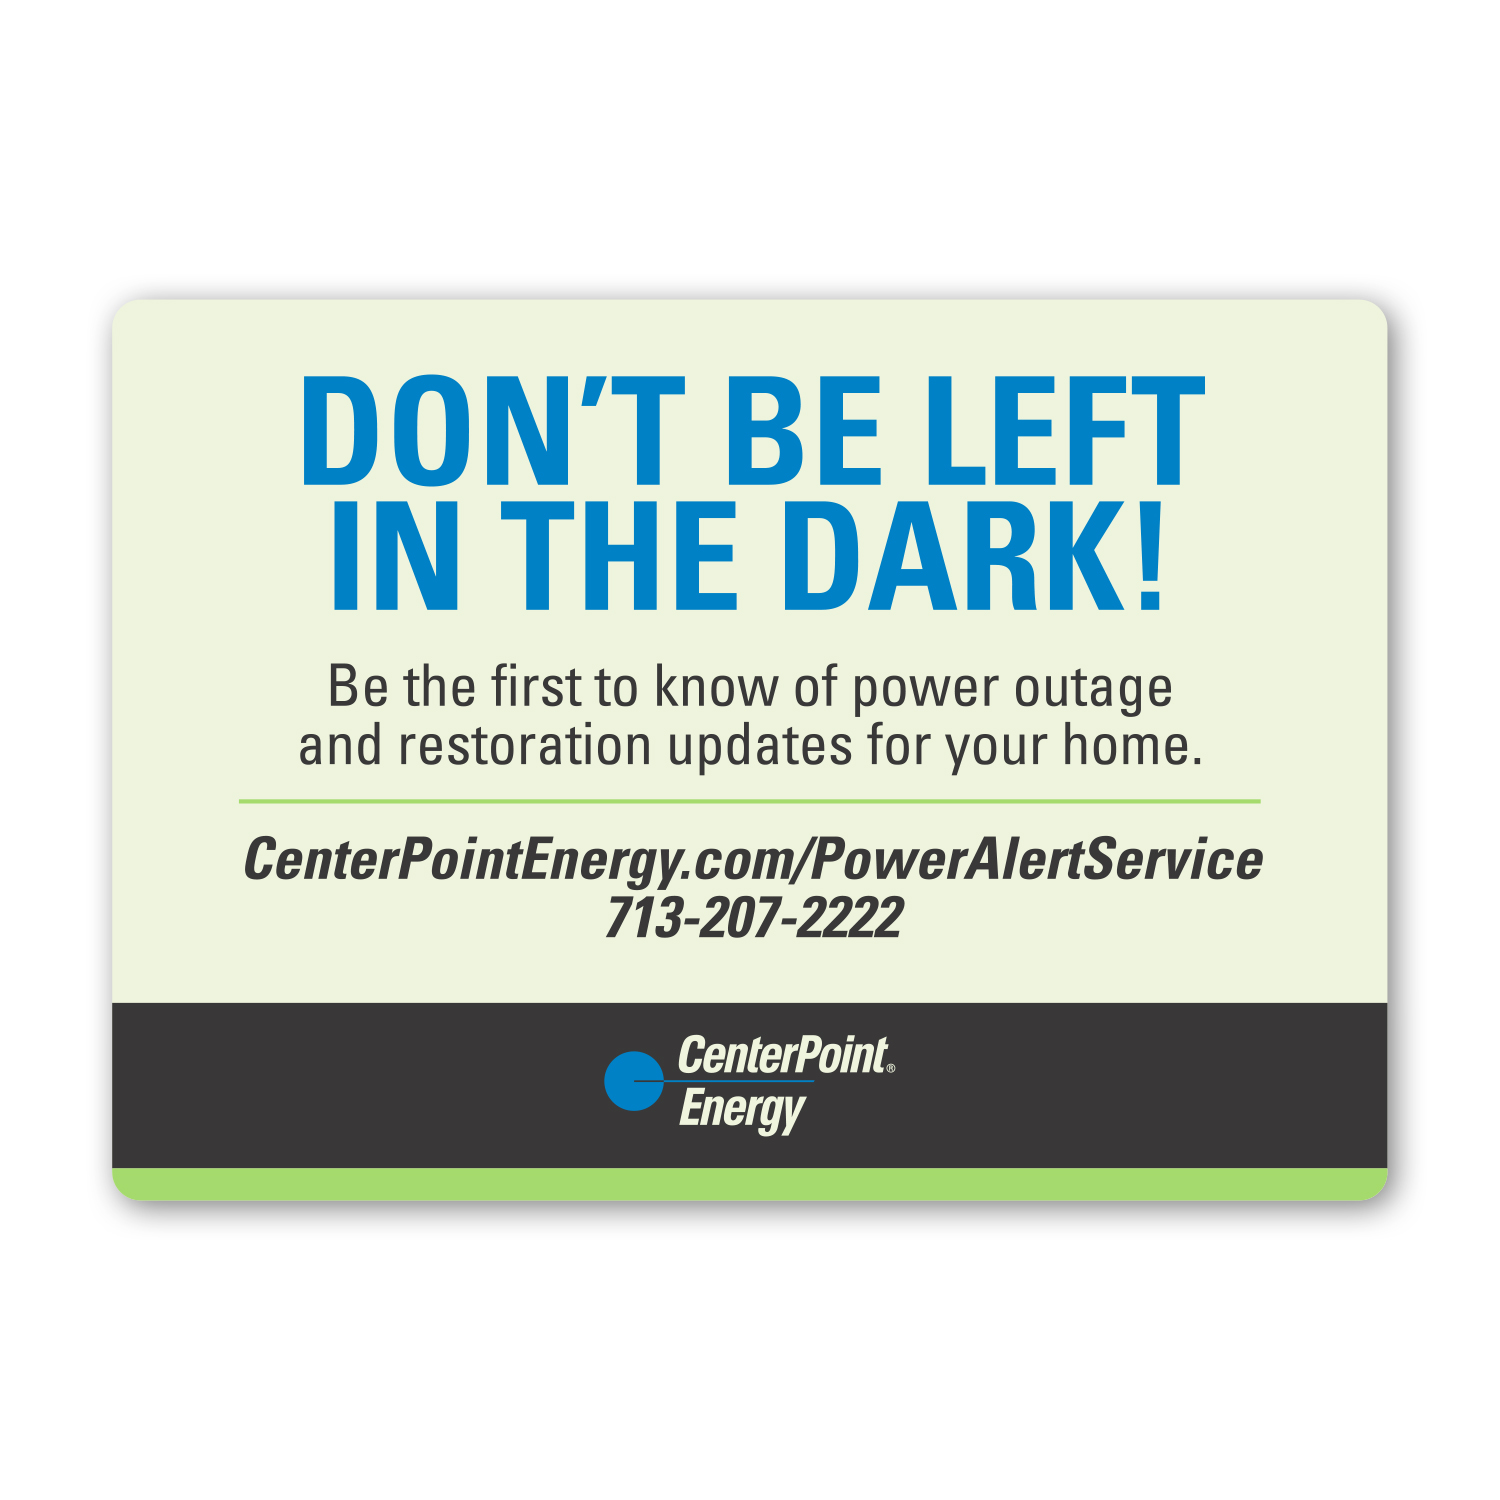 "• GLCST Custom Glow-in-the-Dark Magnet, 3"" x 4.25"", .025 thickness  • 13,000 piece order for CenterPoint Energy to send out to their customers with contact information in case of an emergency."